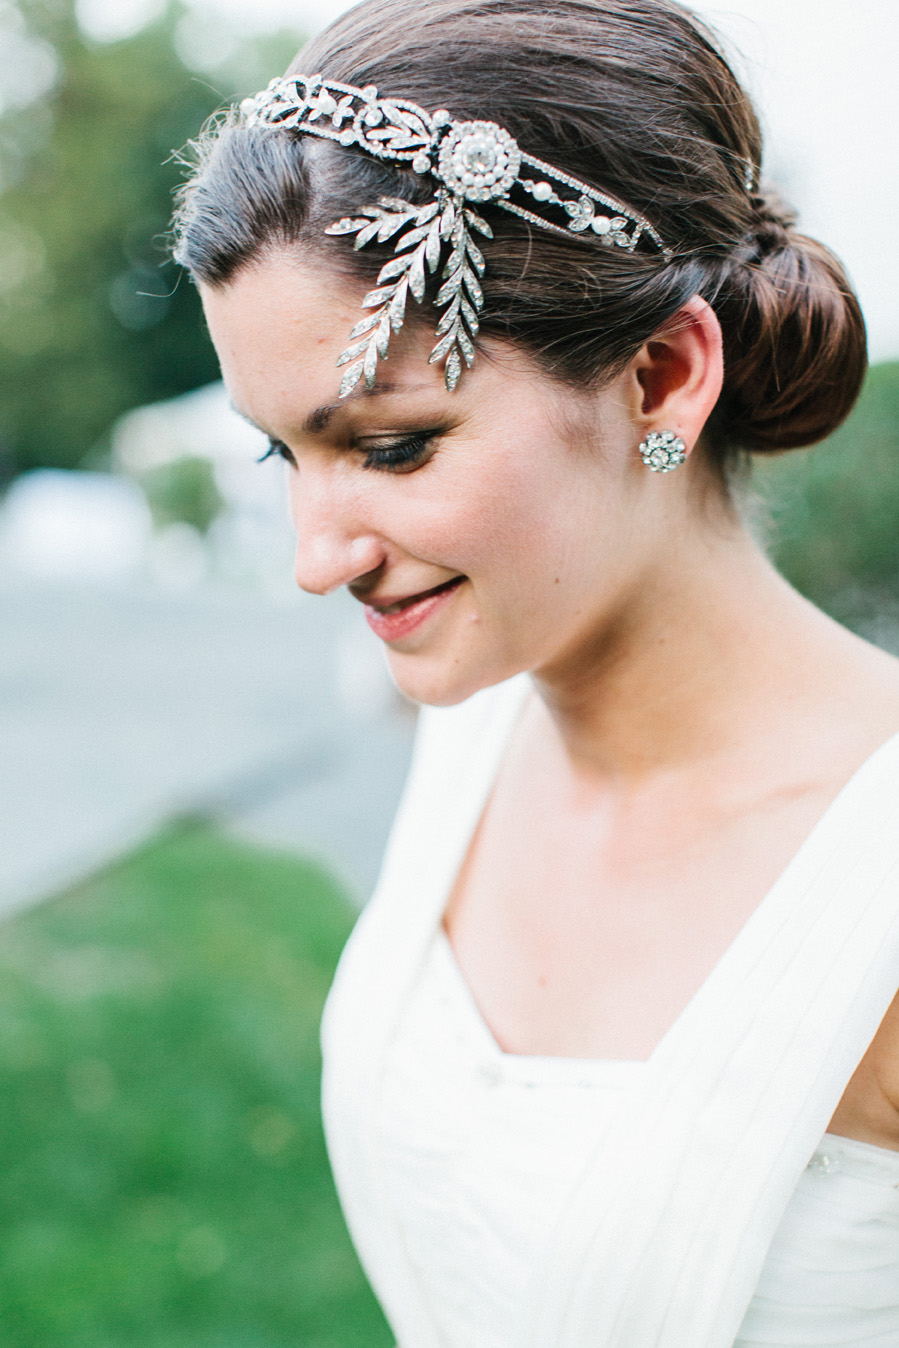 Kerrin swapped her veil for the extra foliage on her headband post-ceremony, giving her a new reception vibe.